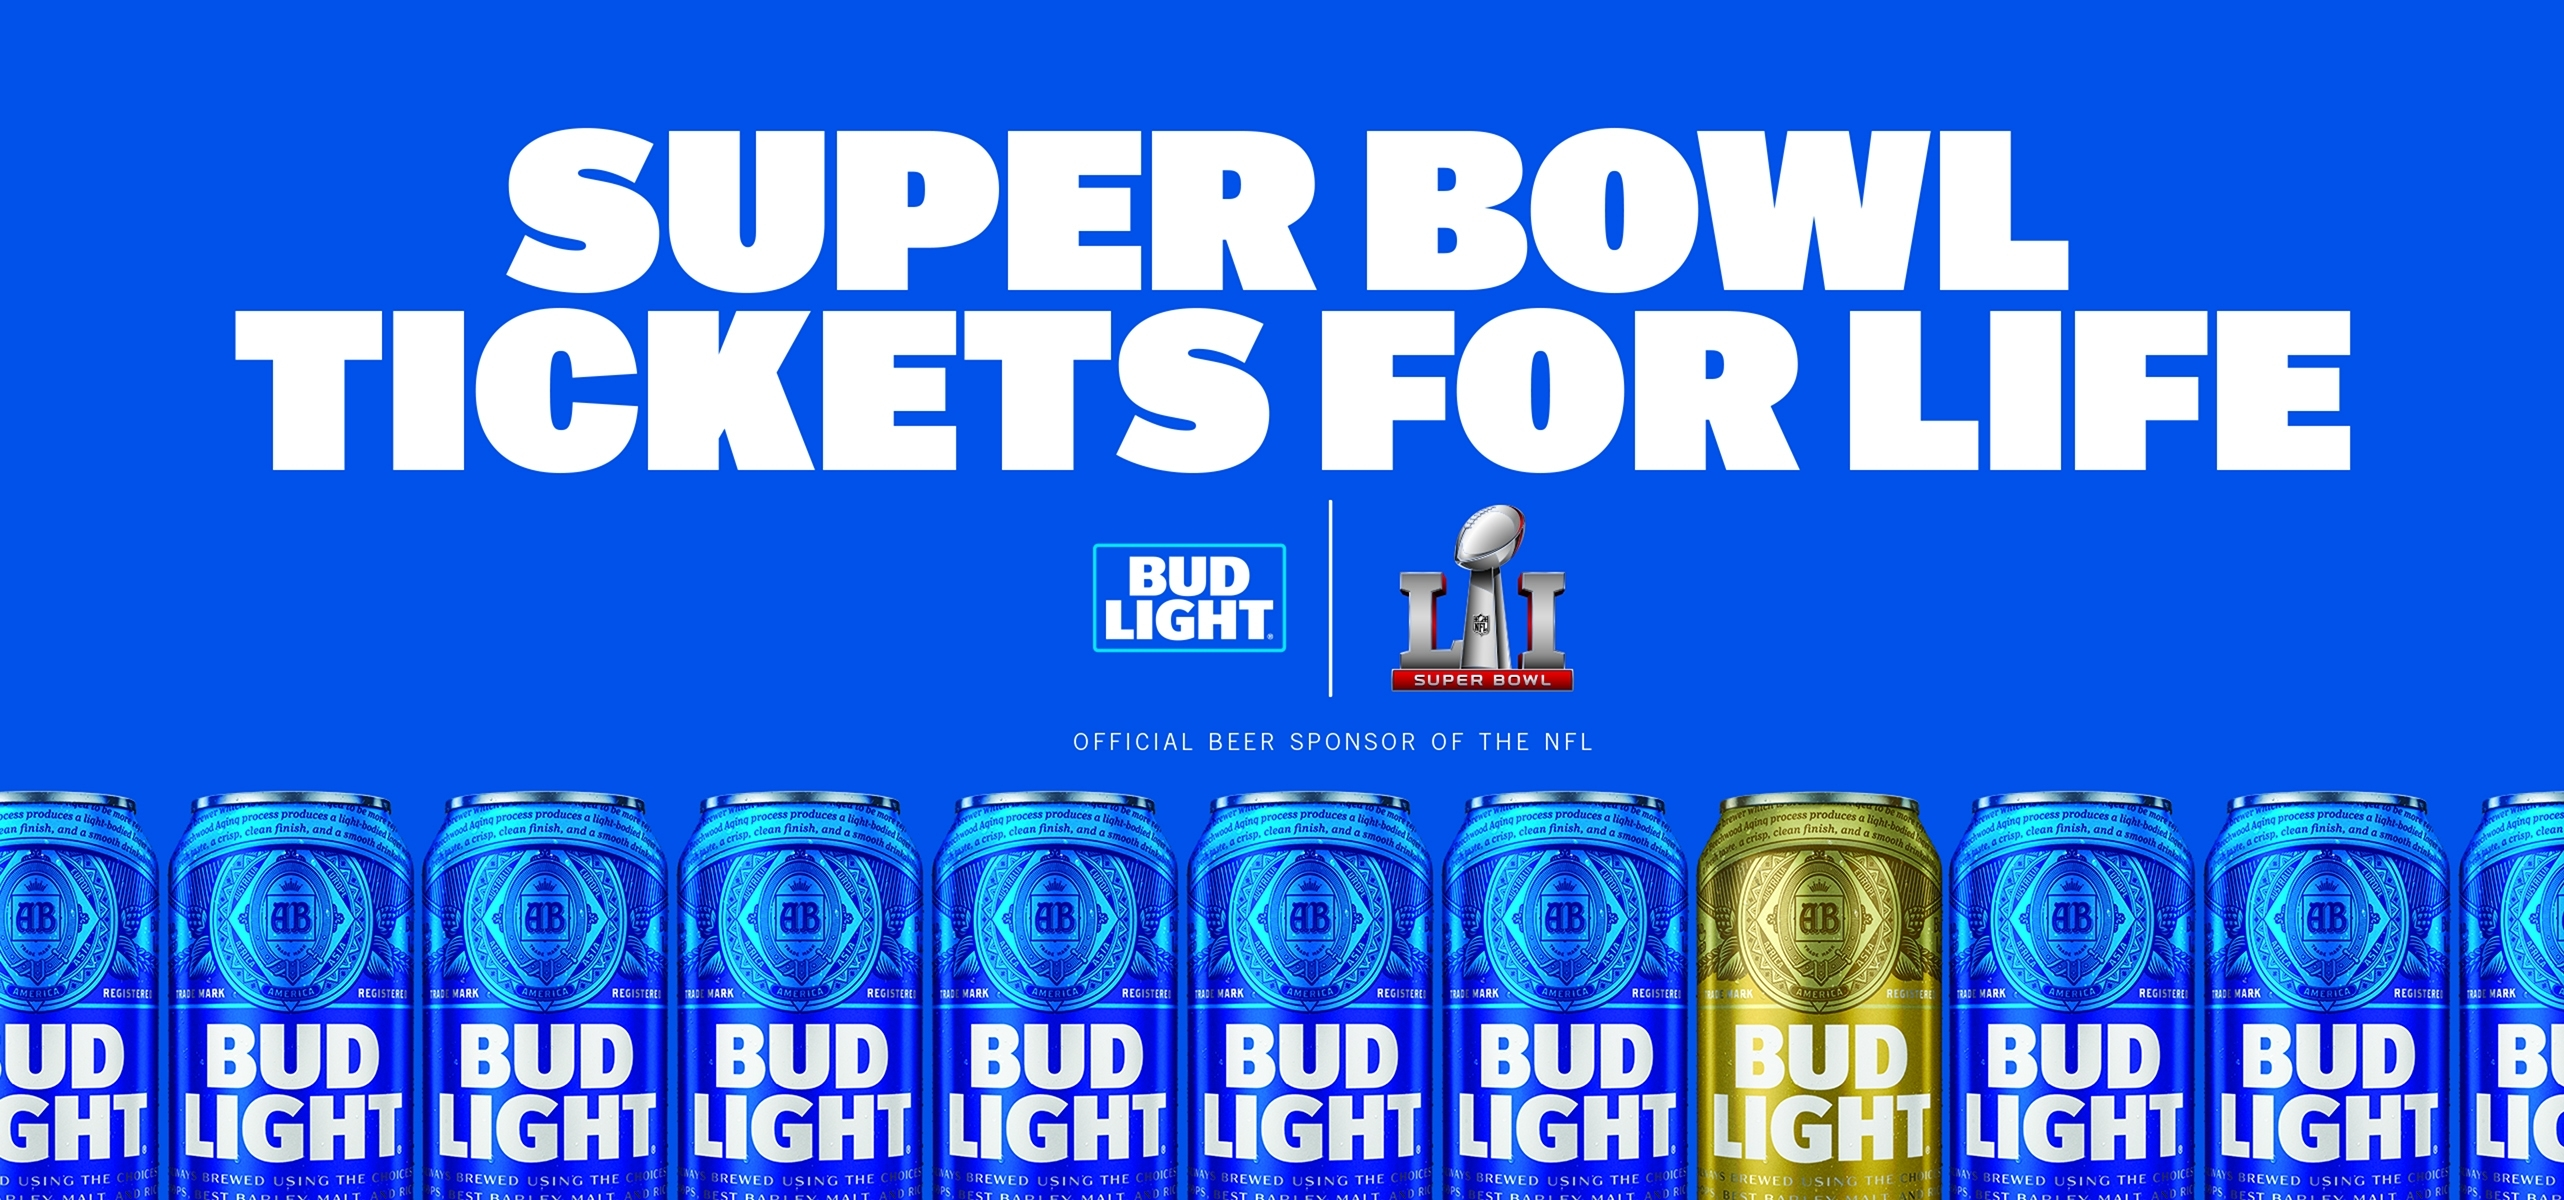 Strike Gold With Bud Light For A Chance To Win Super Bowl regarding Bud Light Super Bowl